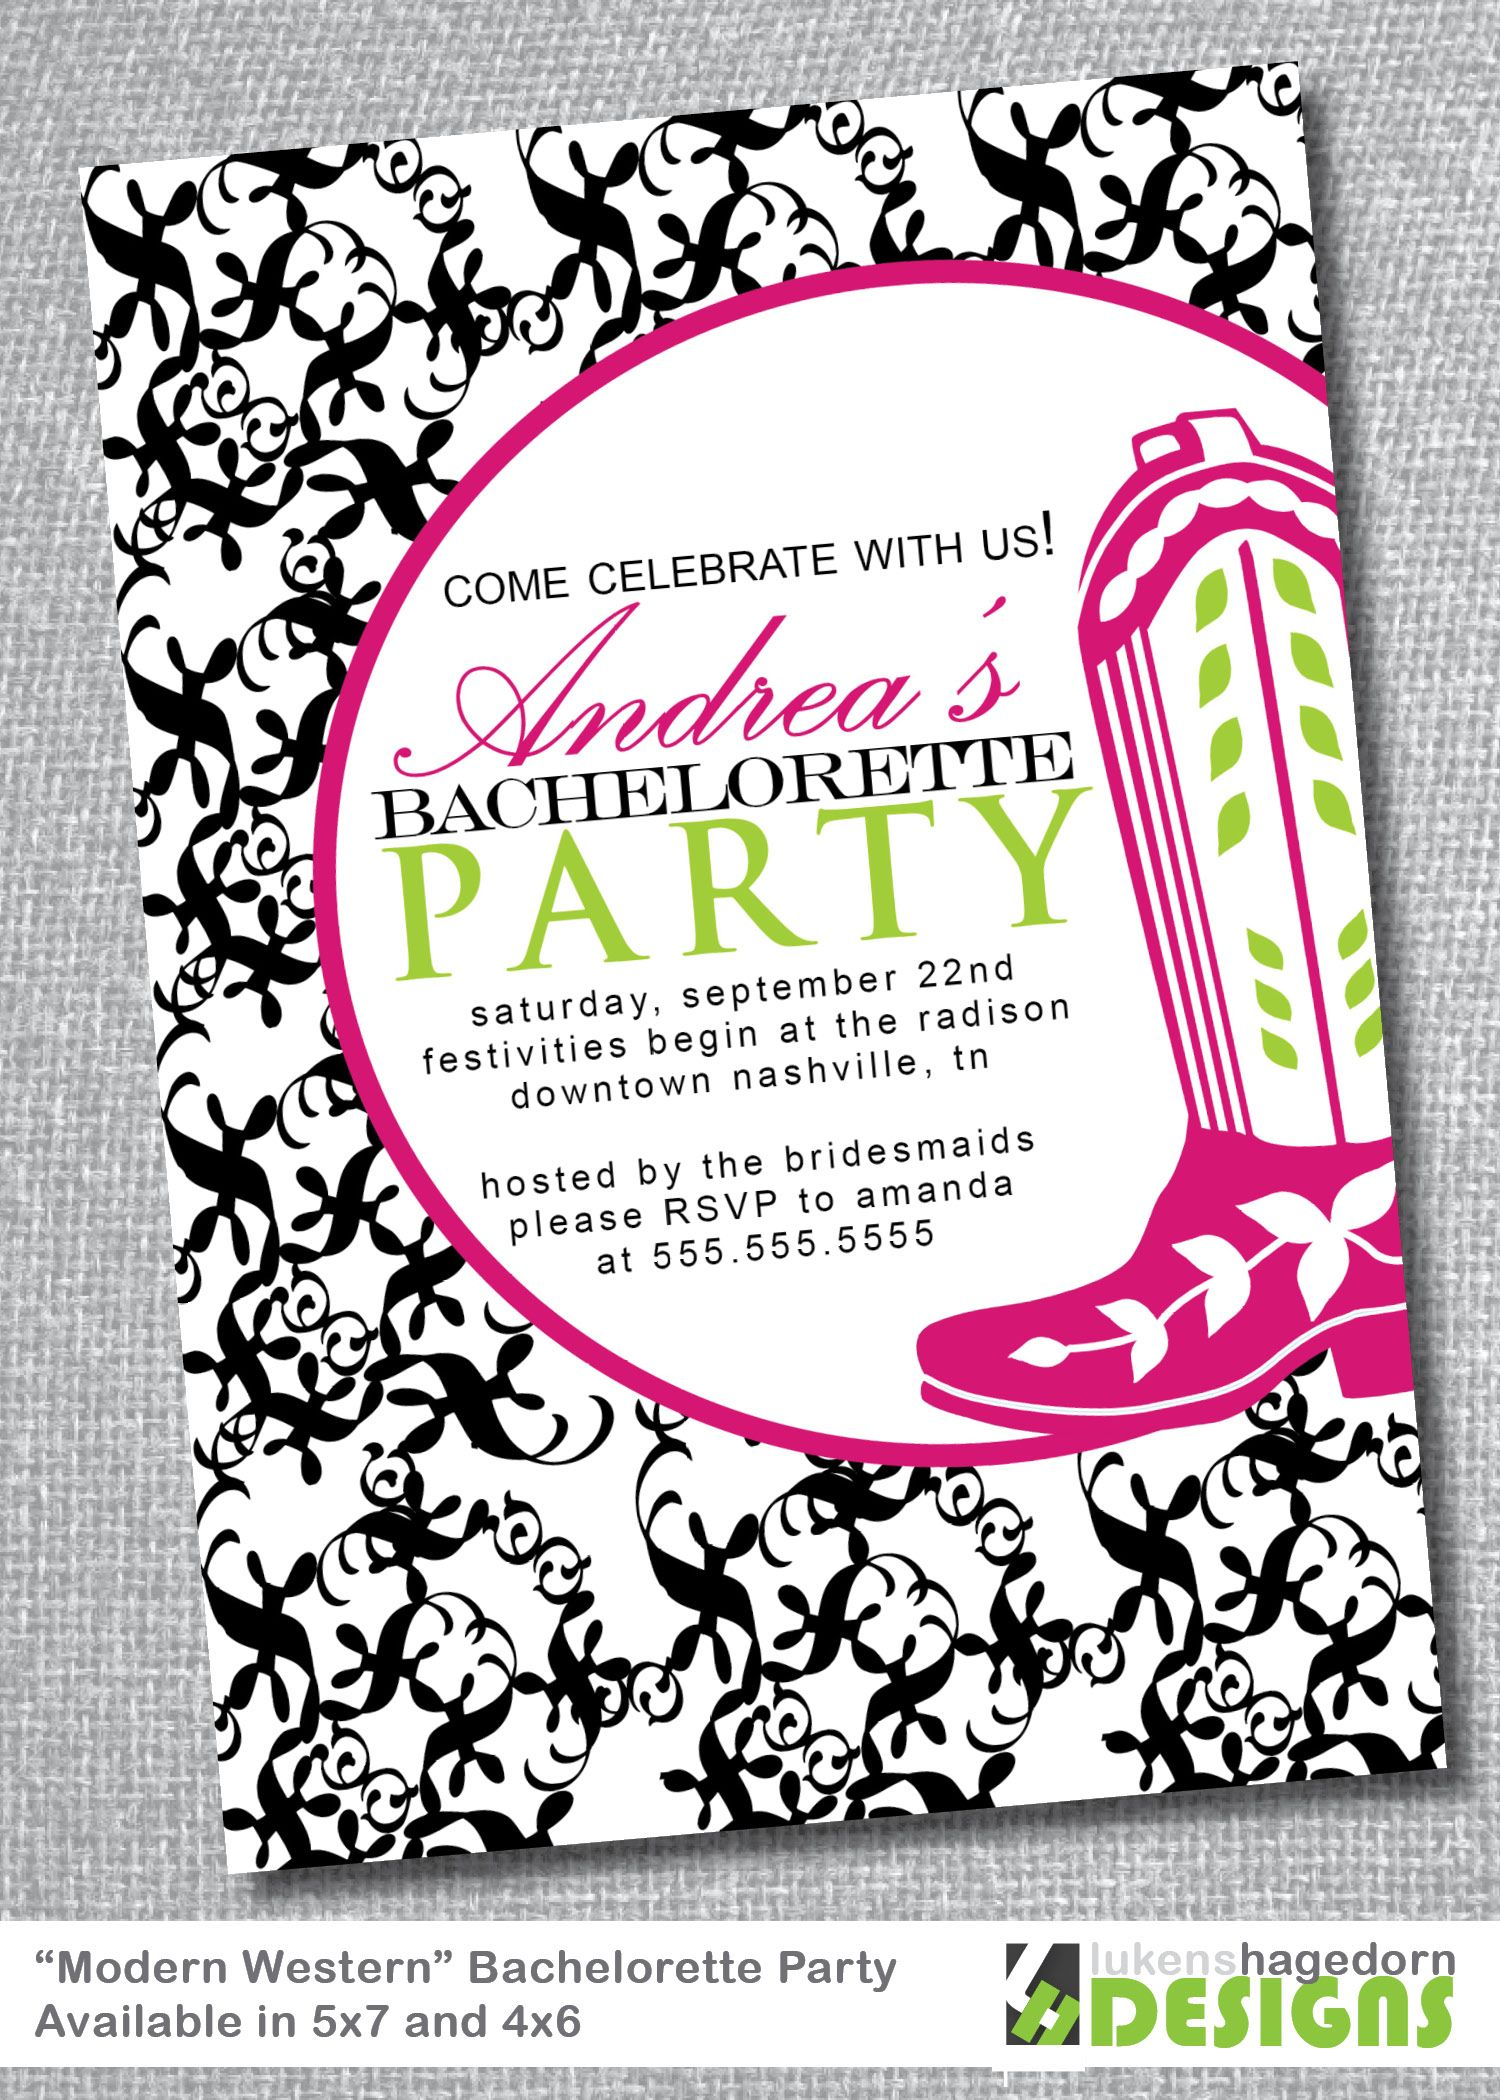 Western Bachelorette Party Invitation | Hen nights, Party ...